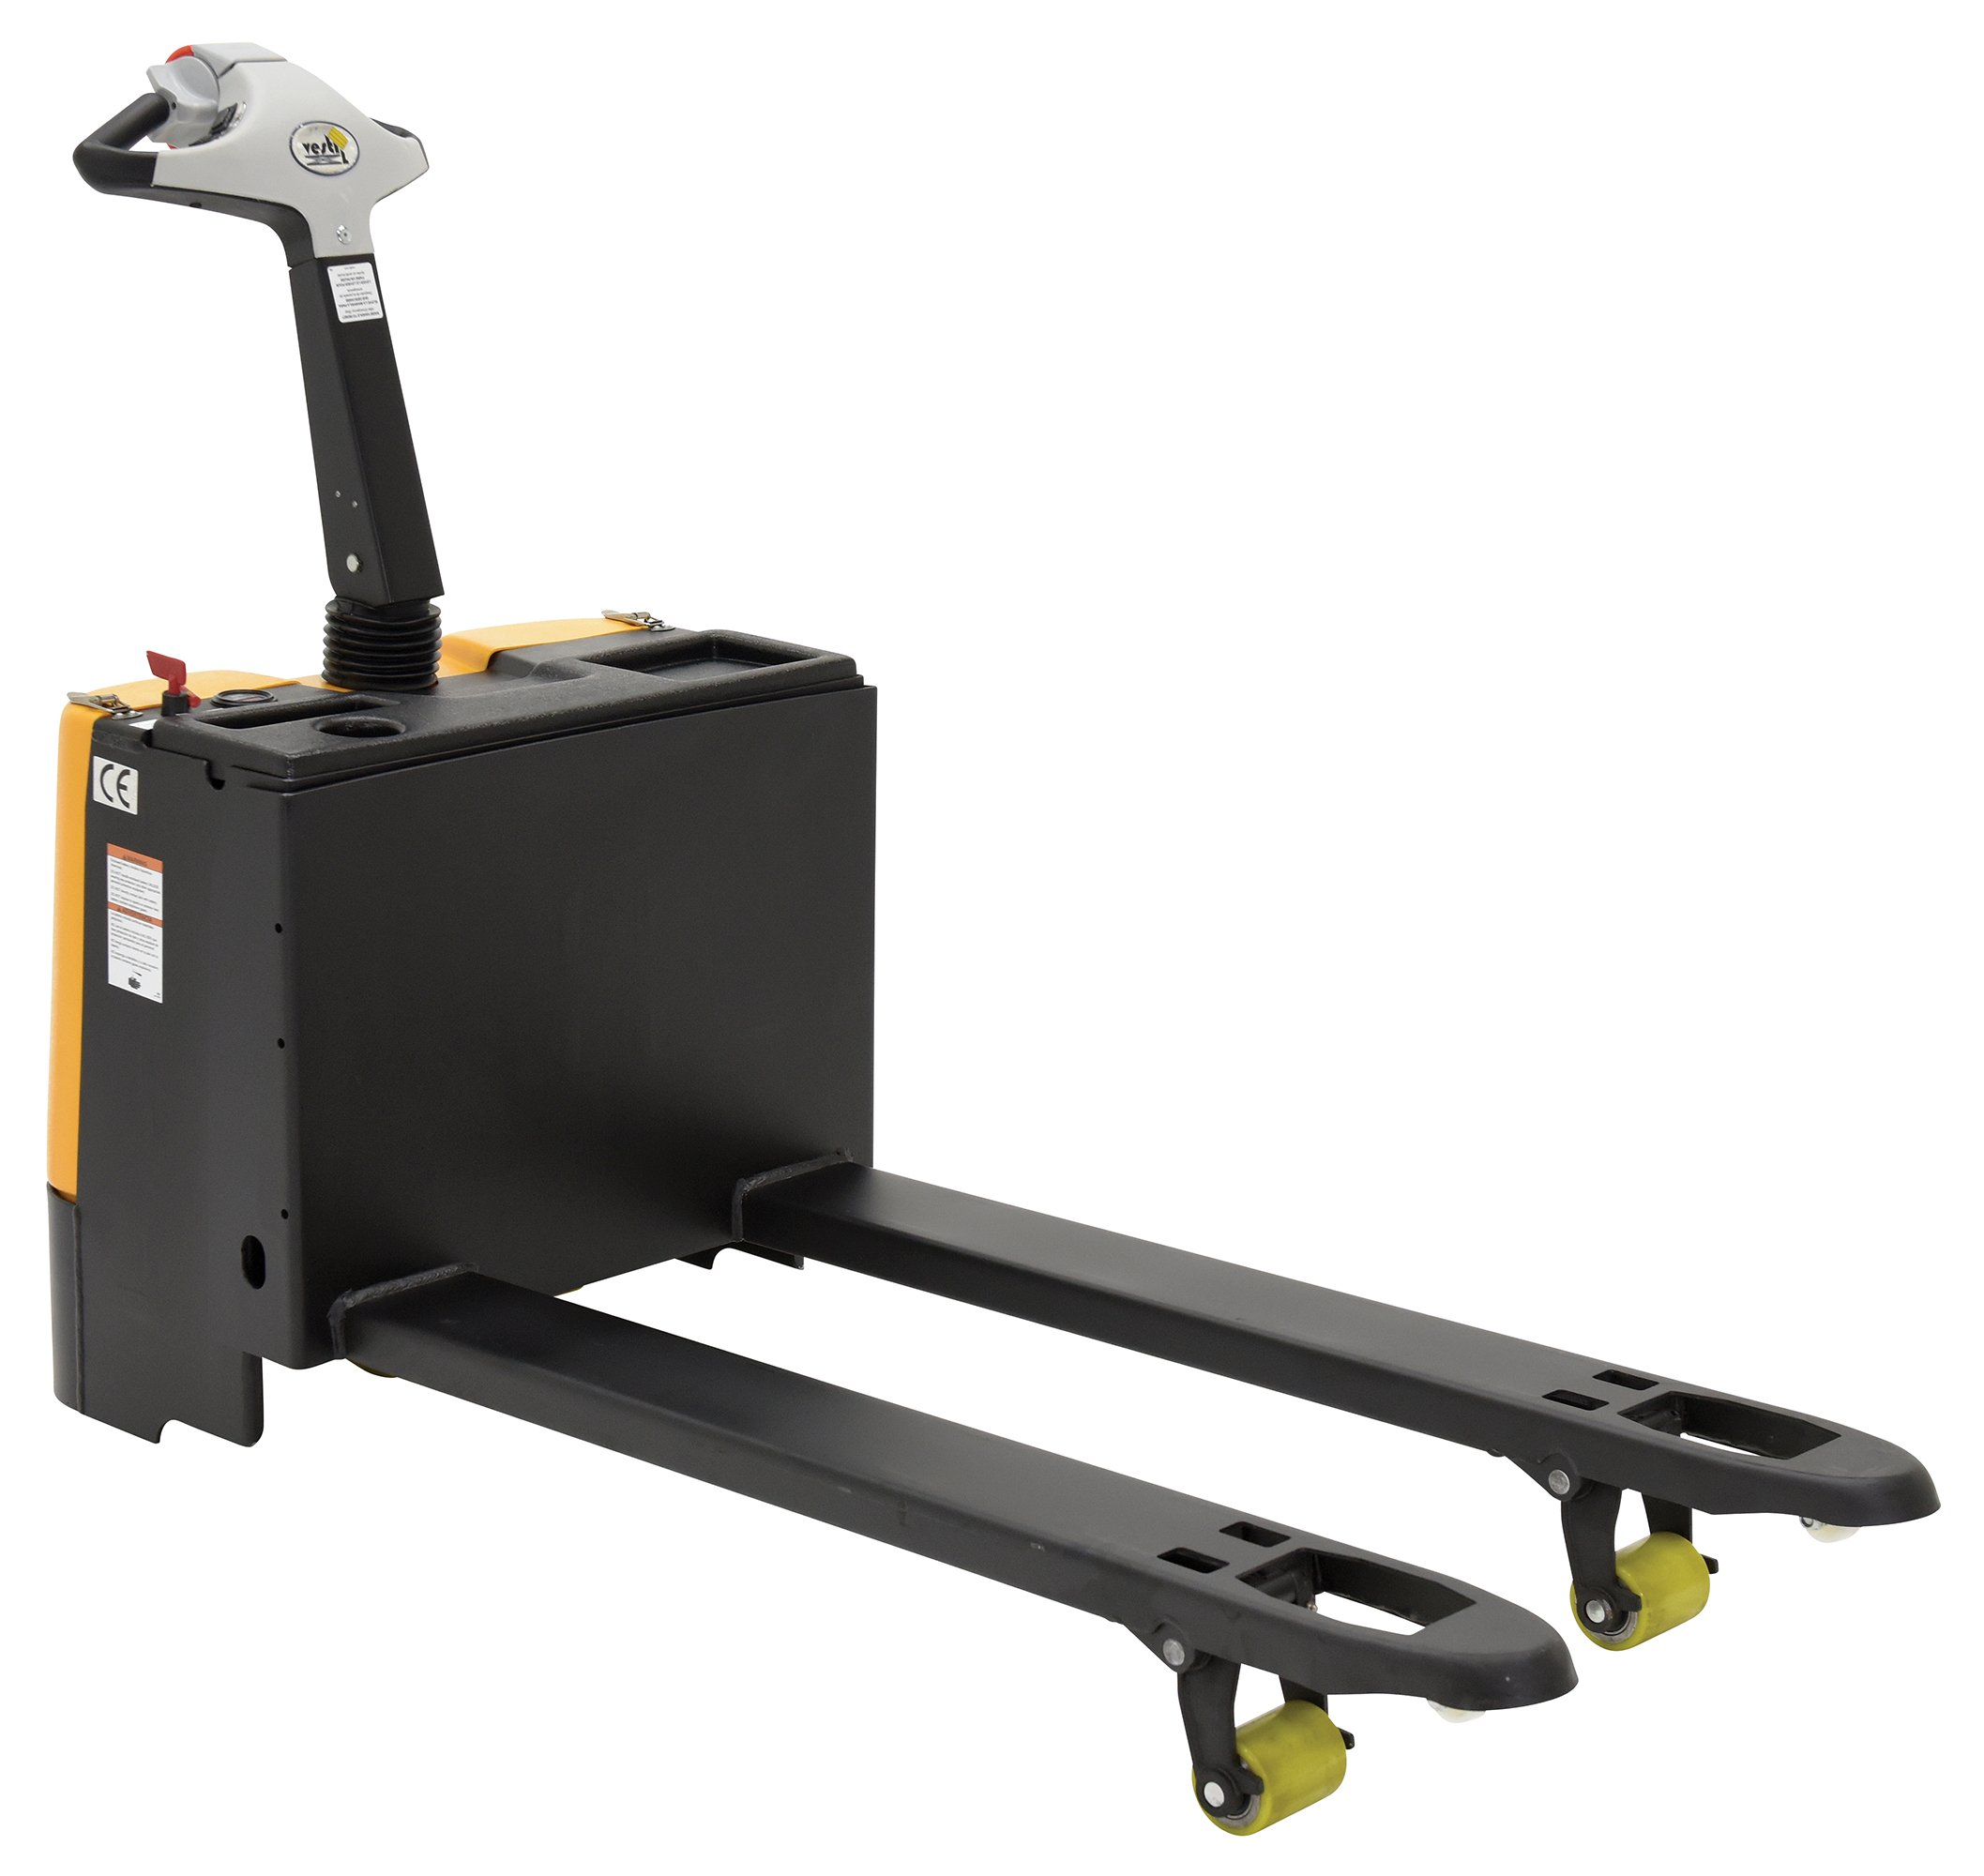 Vestil EPT-2547-30 Fully Powered Electric Pallet Truck, 3300 lbs Capacity, 47'' Length x 25'' Width Fork